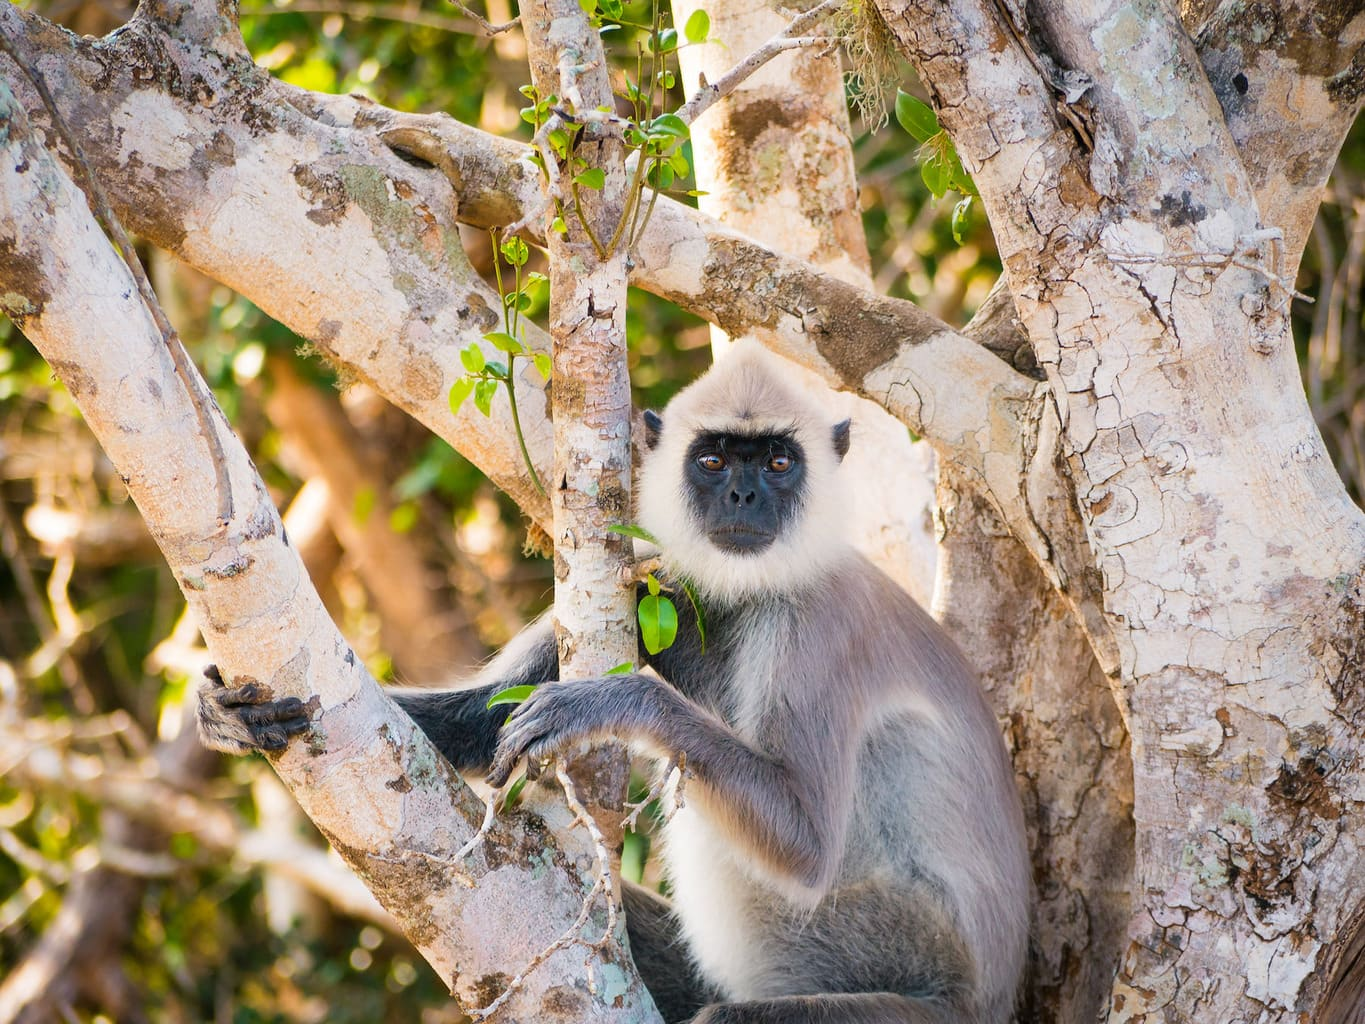 Monkey at Yala